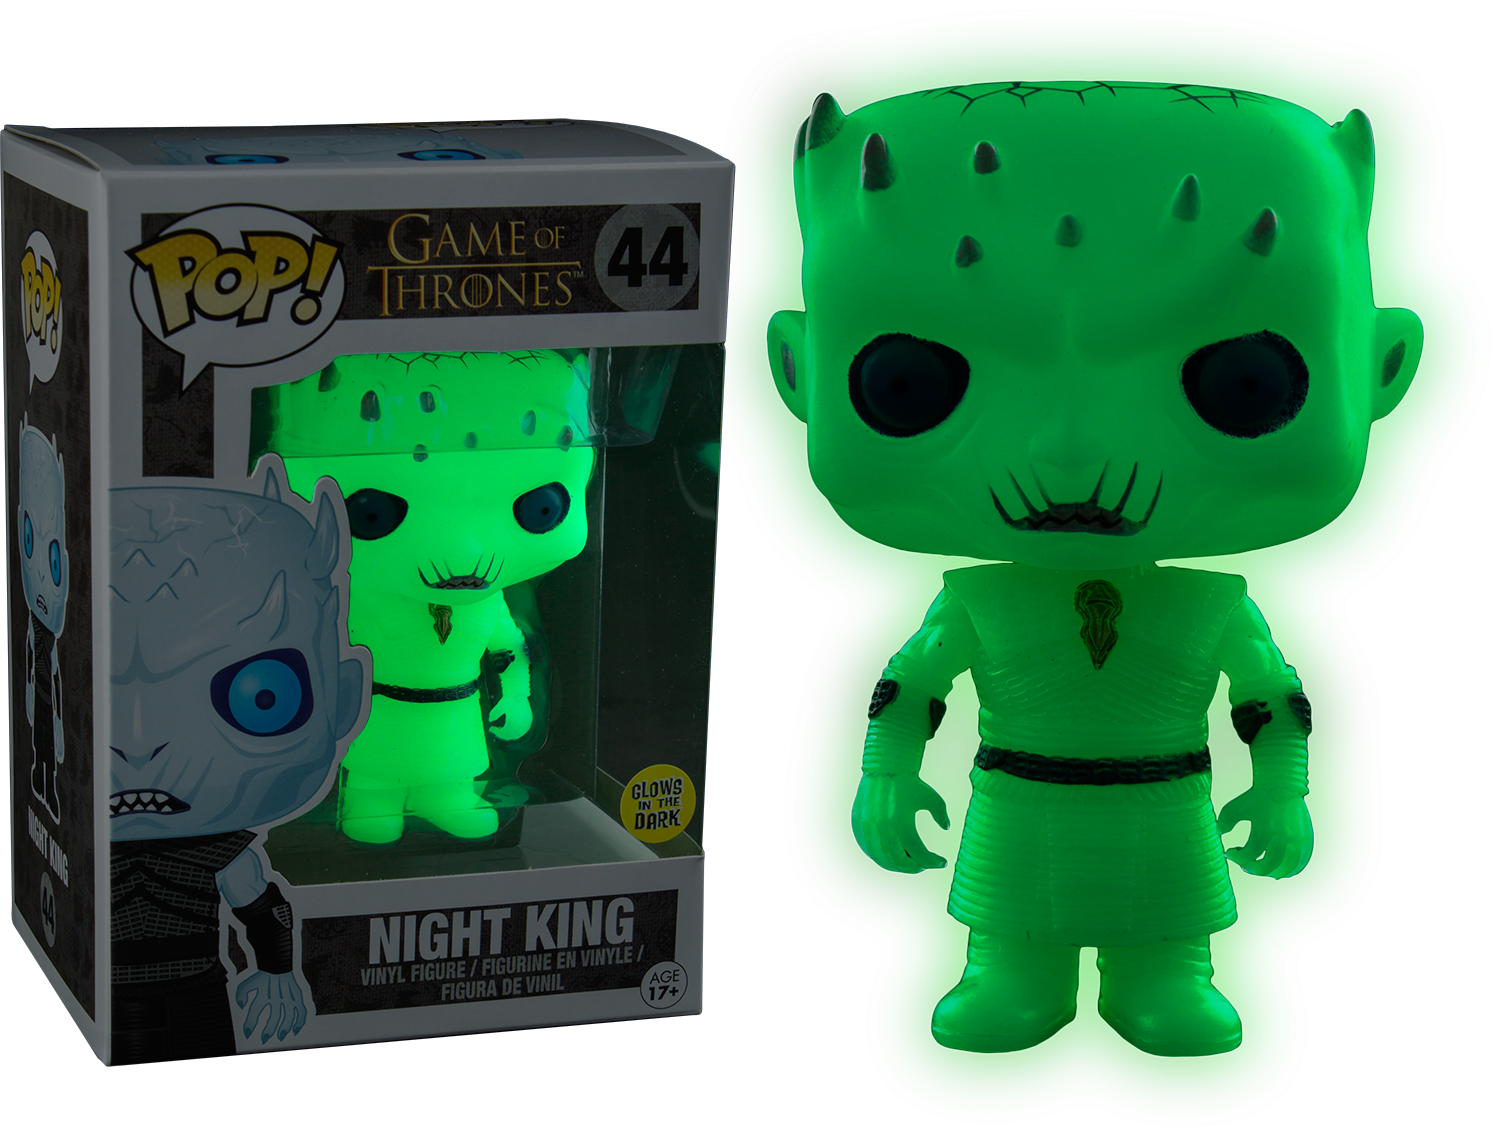 PRE-ORDER Exclusive Game of Thrones - Night King Glow in the Dark Pop! Vinyl Figure